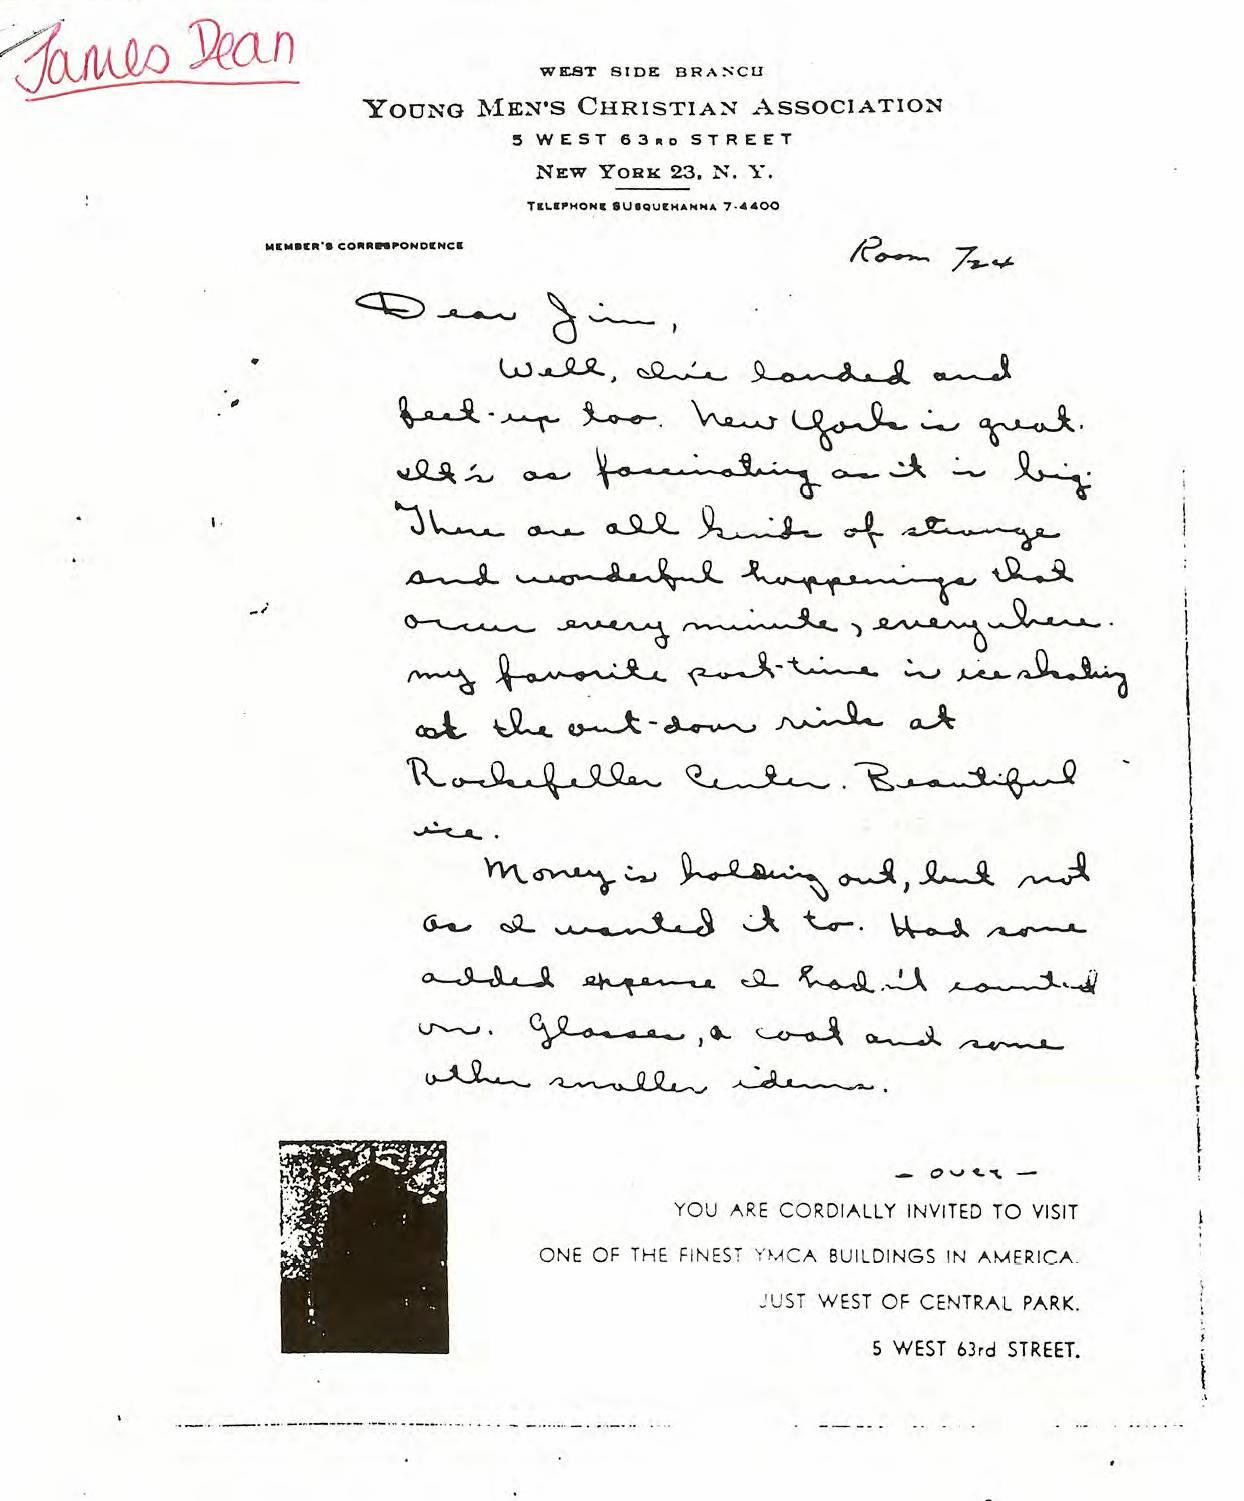 A letter from James Dean to 56 years after his death from the book by Sheila Lowe. (1)